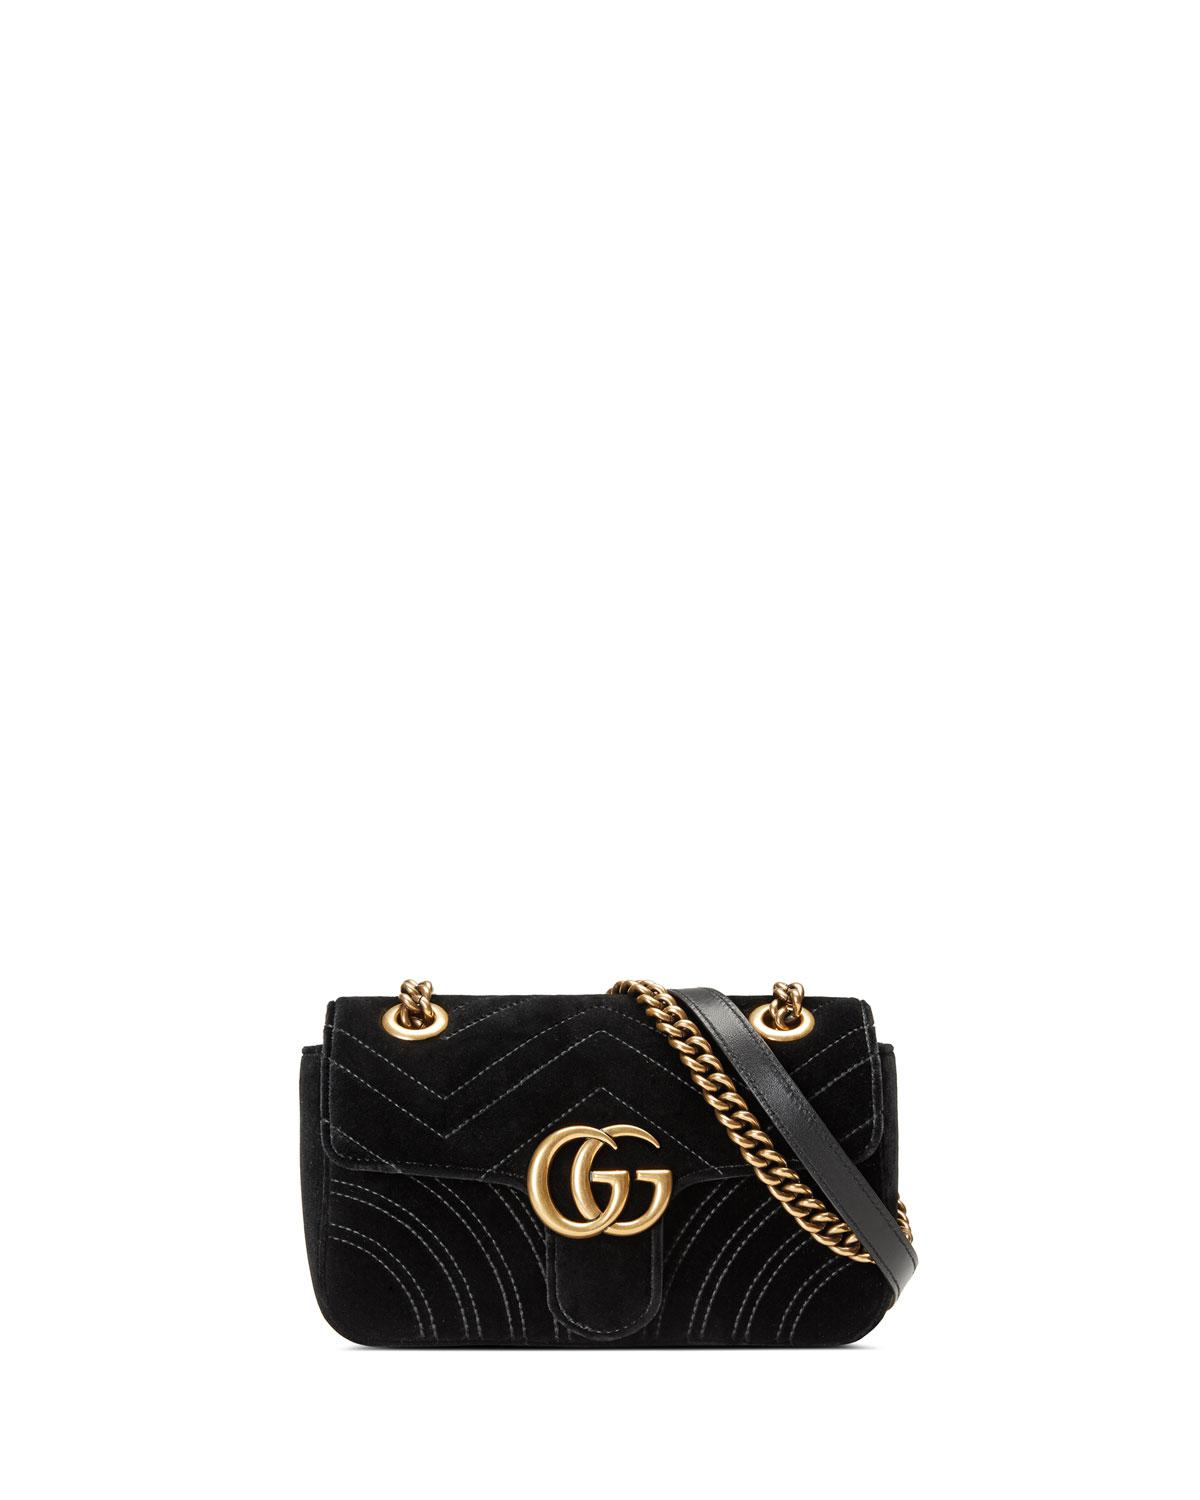 711cc86ac745a Lyst - Gucci GG Marmont 2.0 Mini Quilted Velvet Crossbody Bag in Black